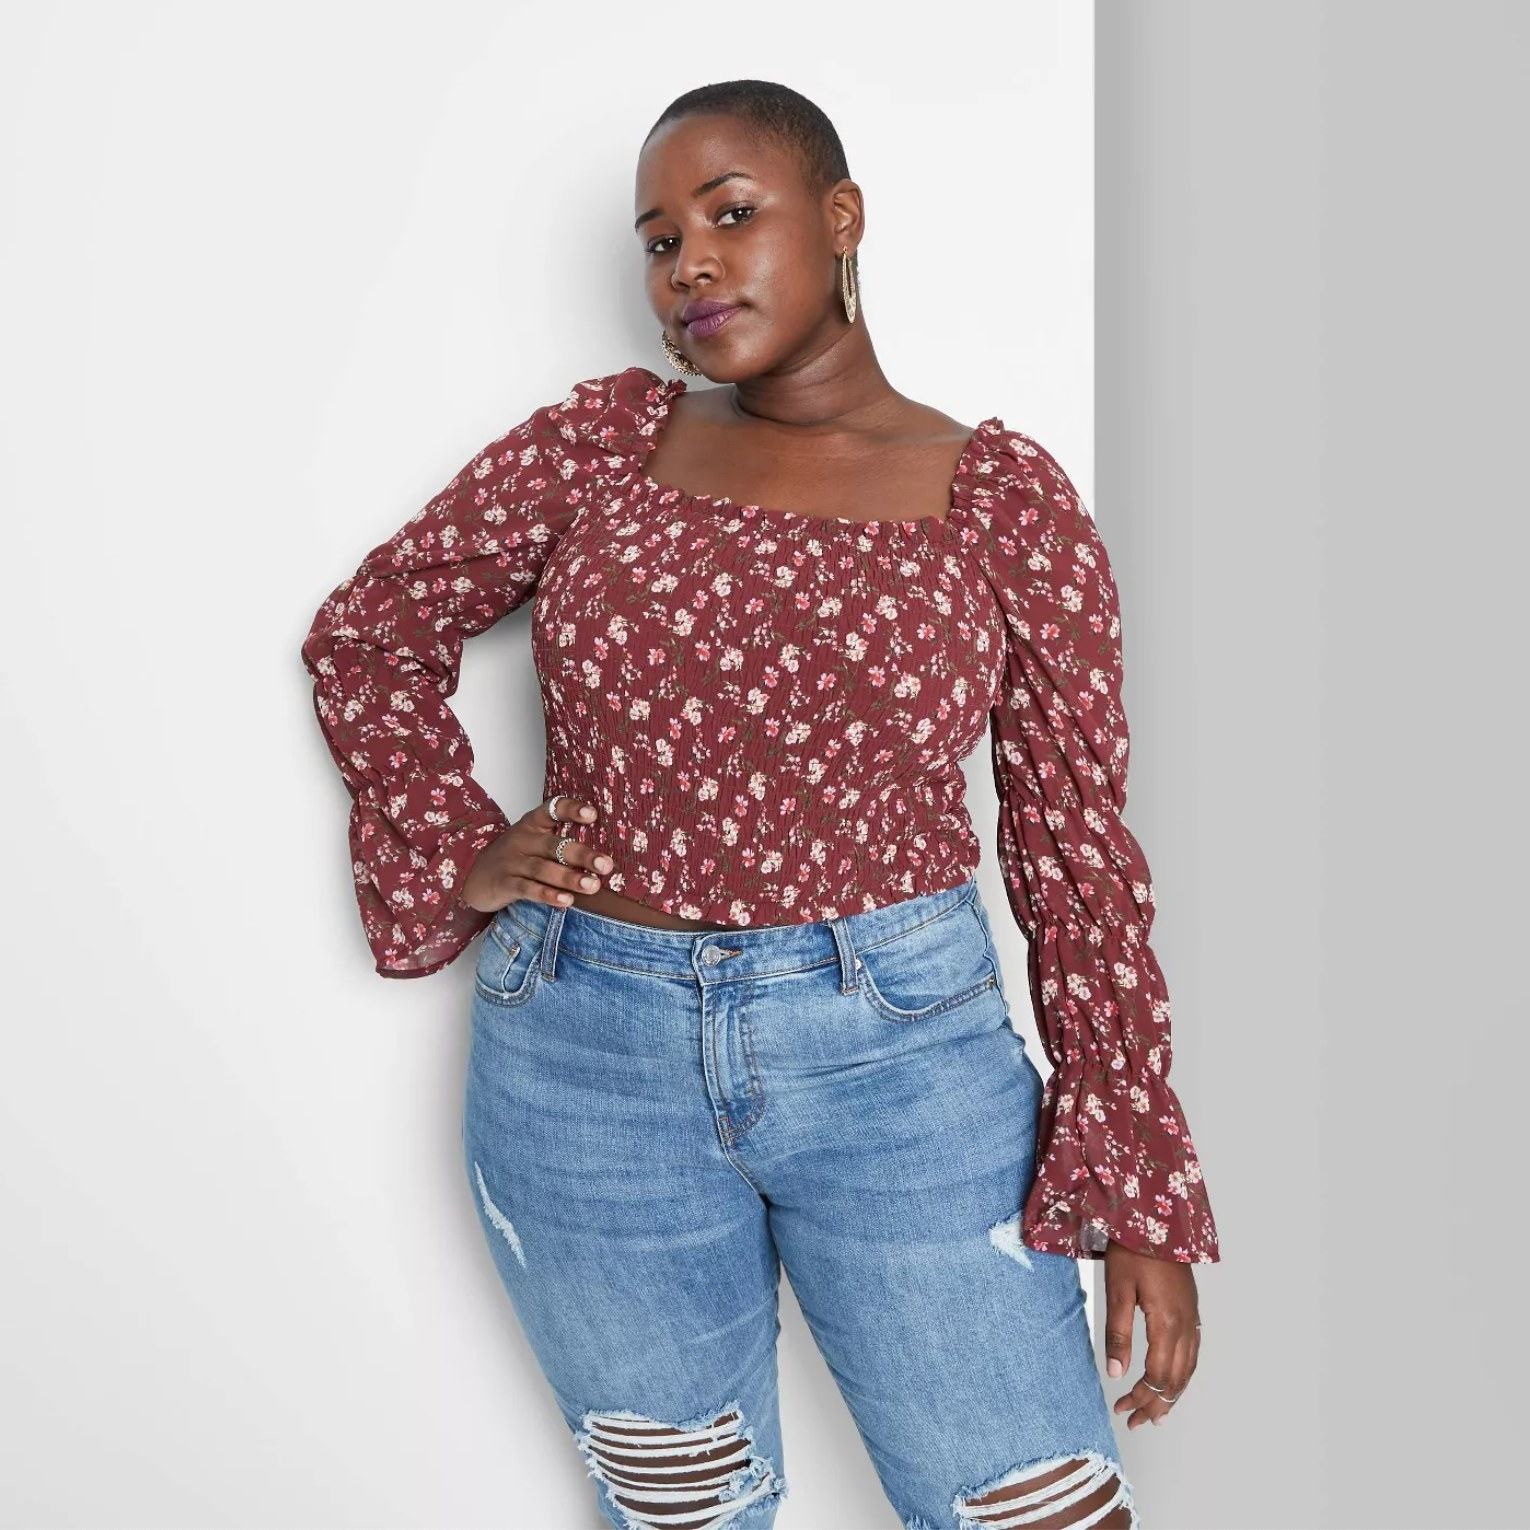 Model wearing the shirt in floral burgundy